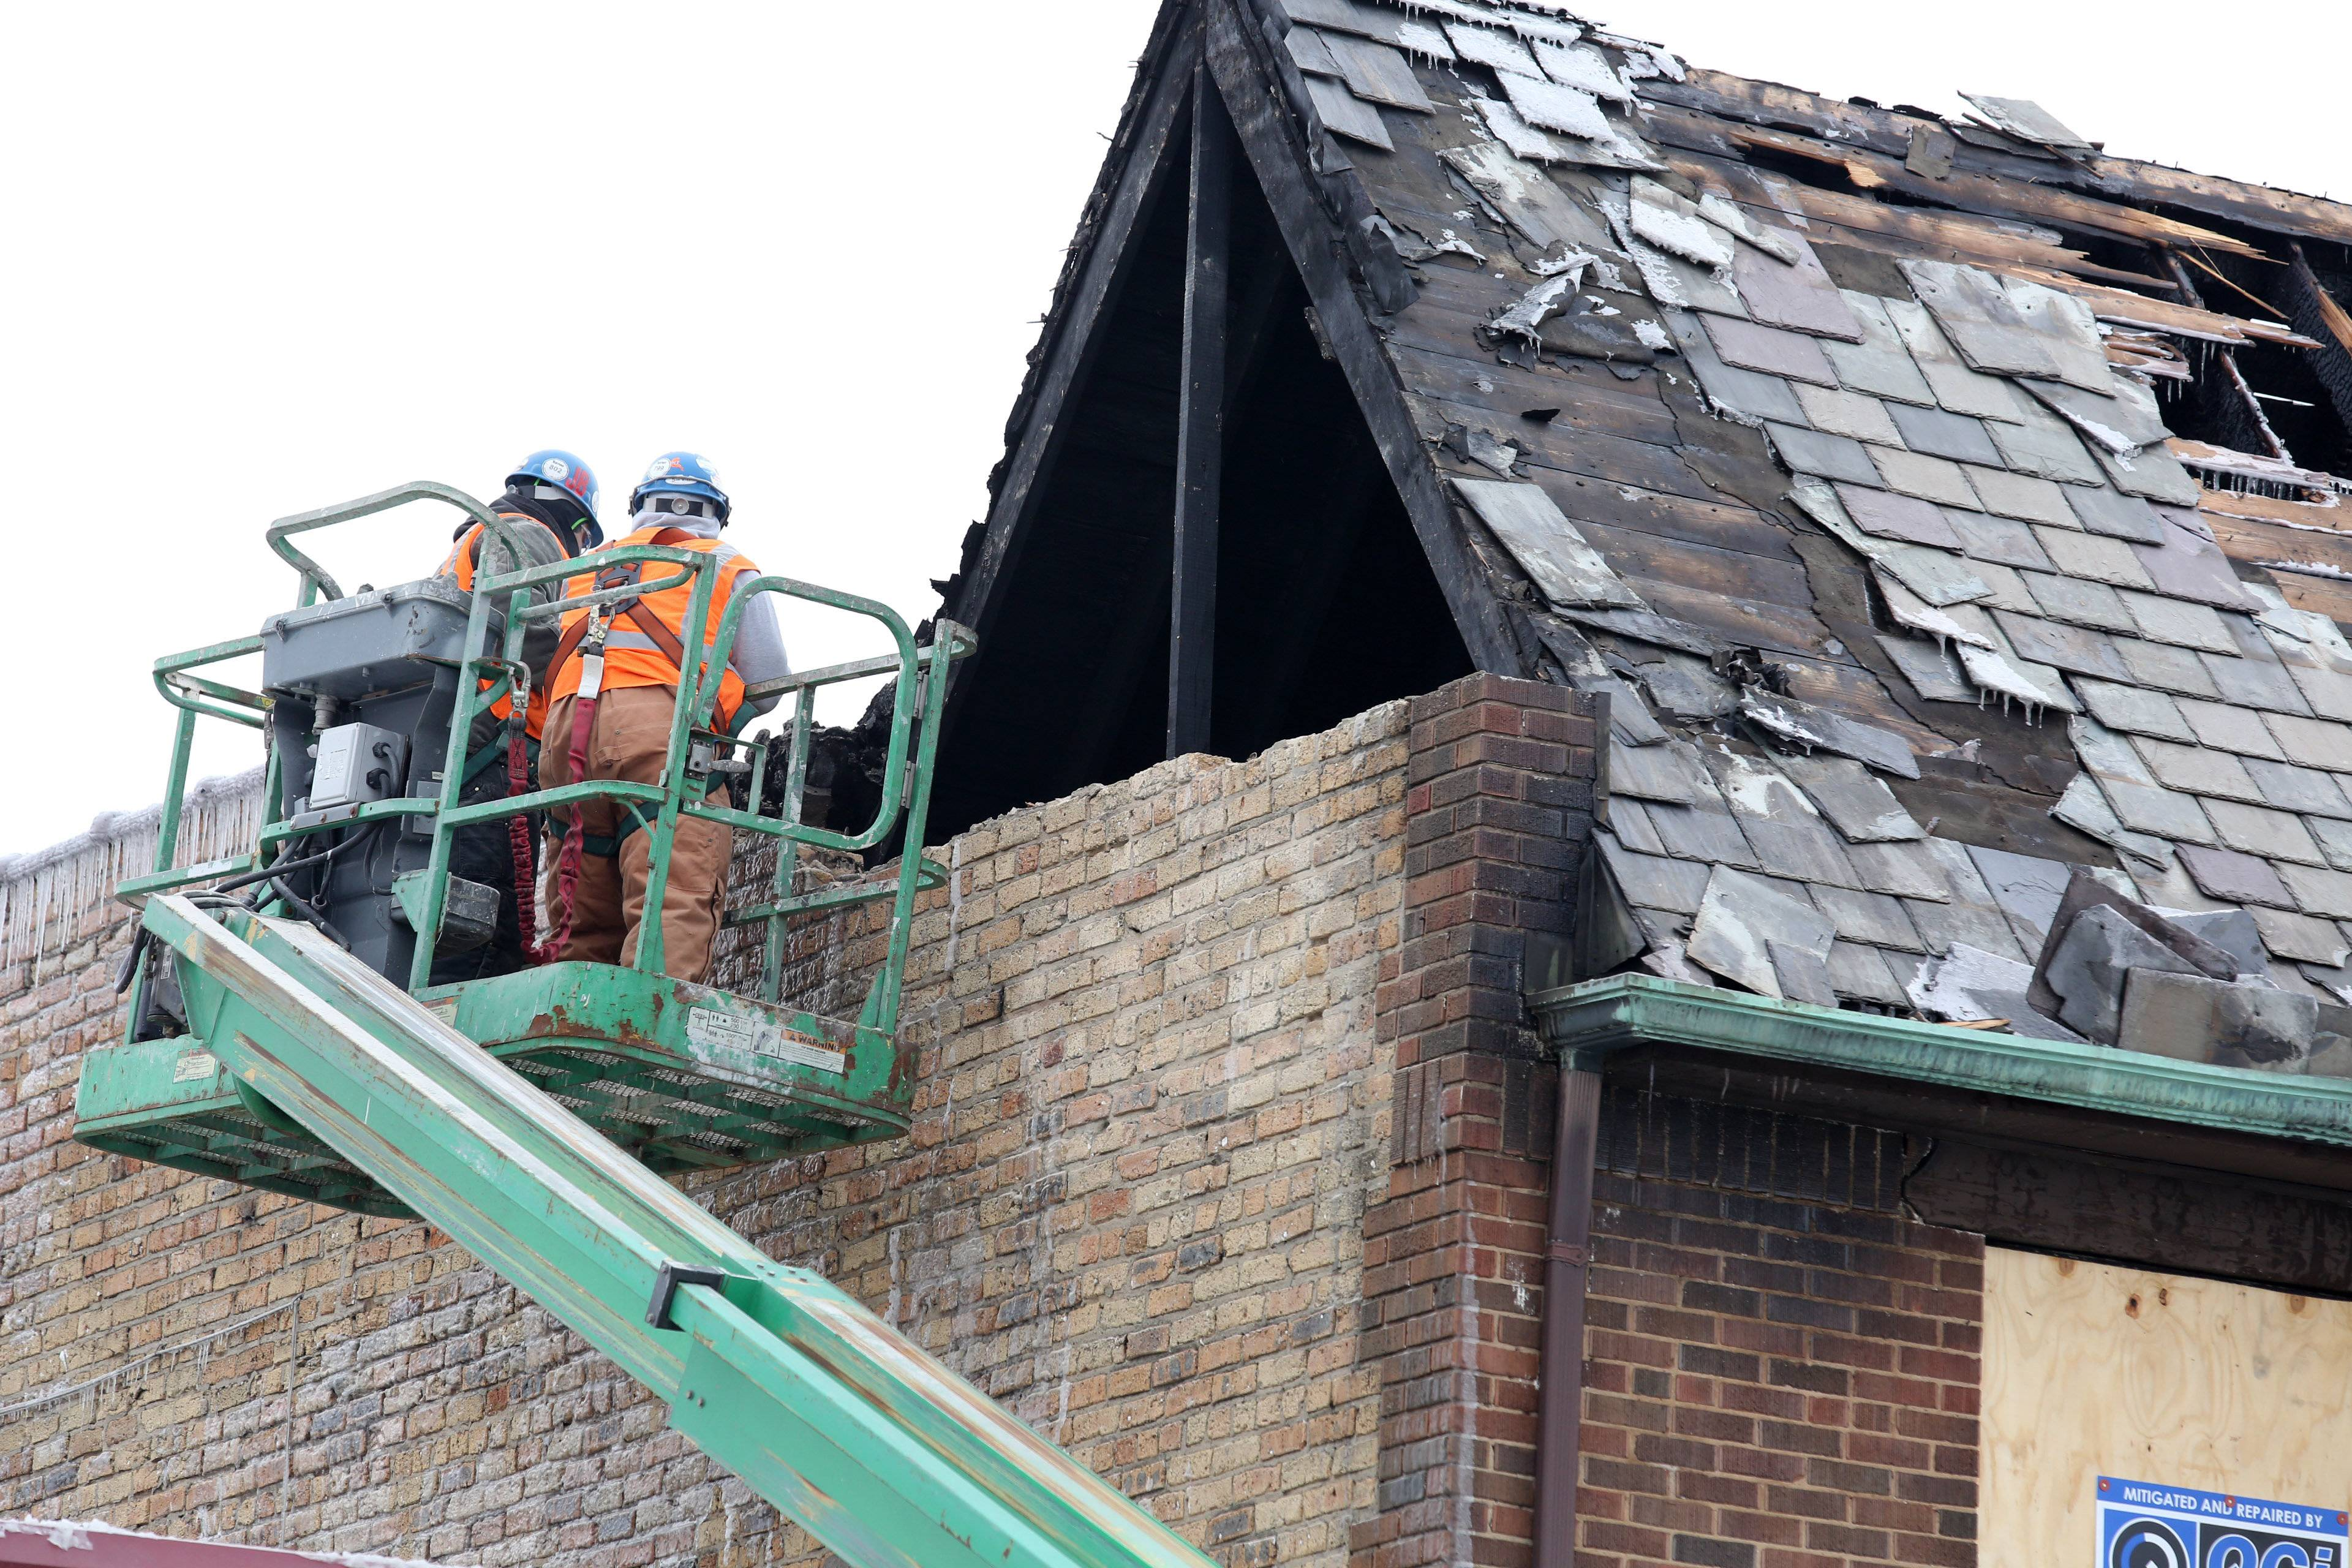 Workers begin Wednesday to demolish a portion of the building damaged by an early Sunday morning fire.